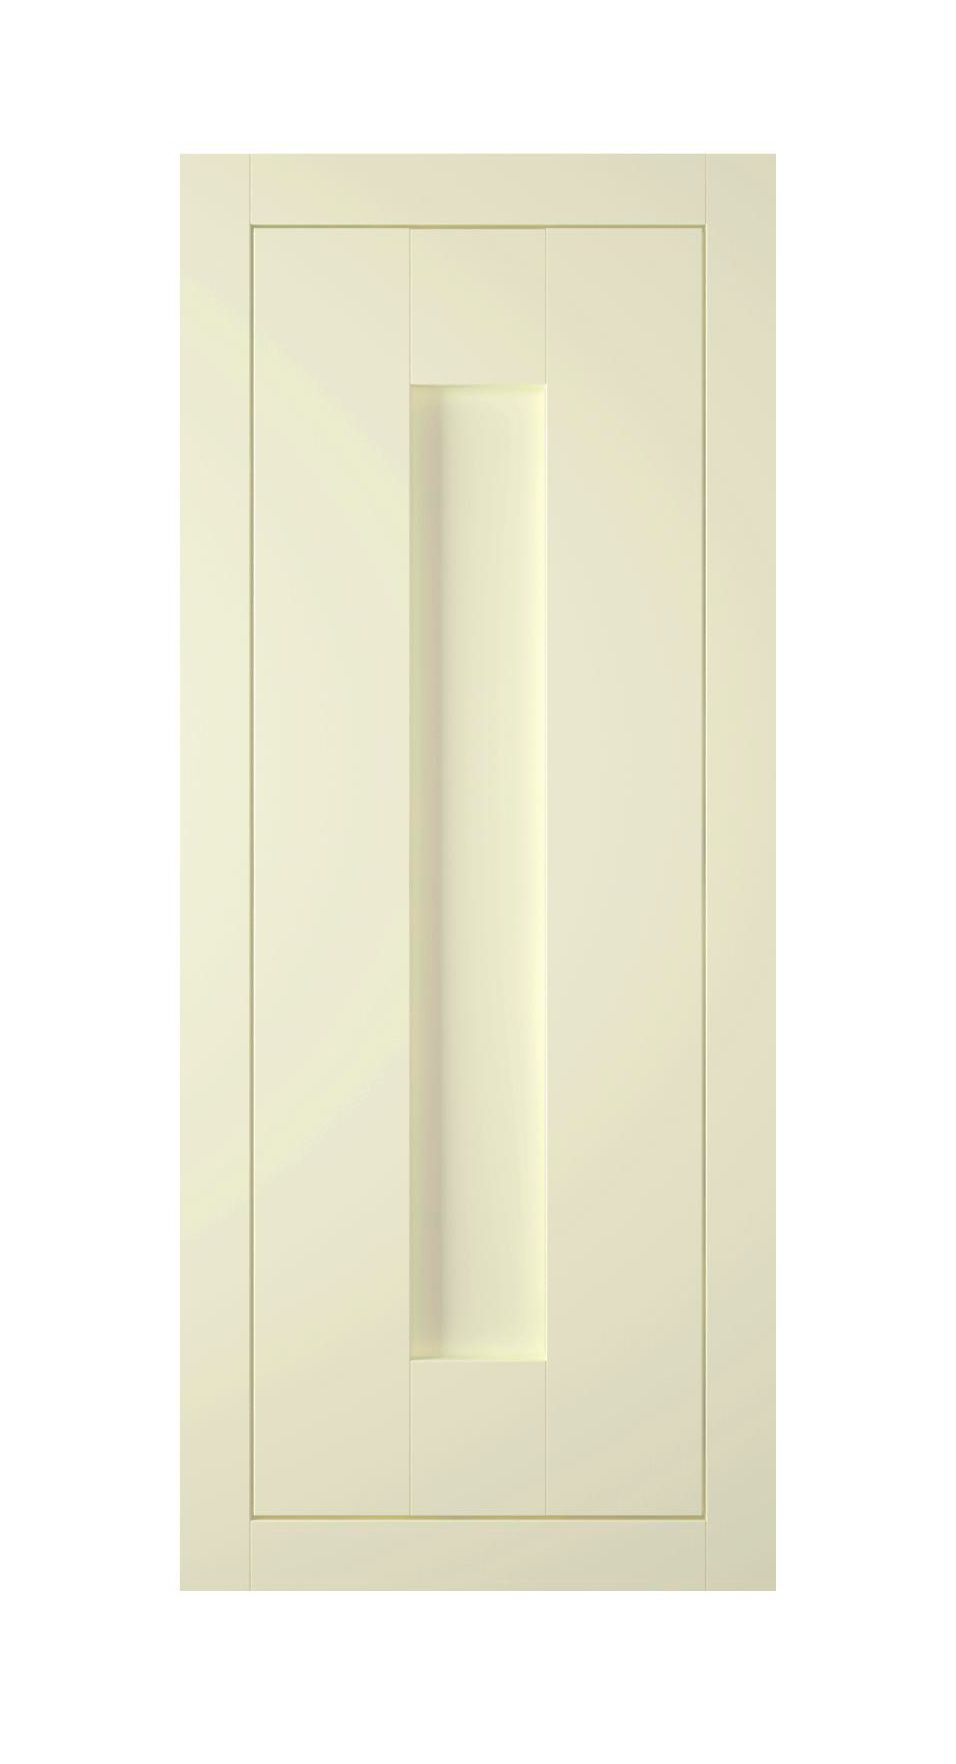 It Kitchens Holywell Ivory Style Framed Glazed Door (w)300mm